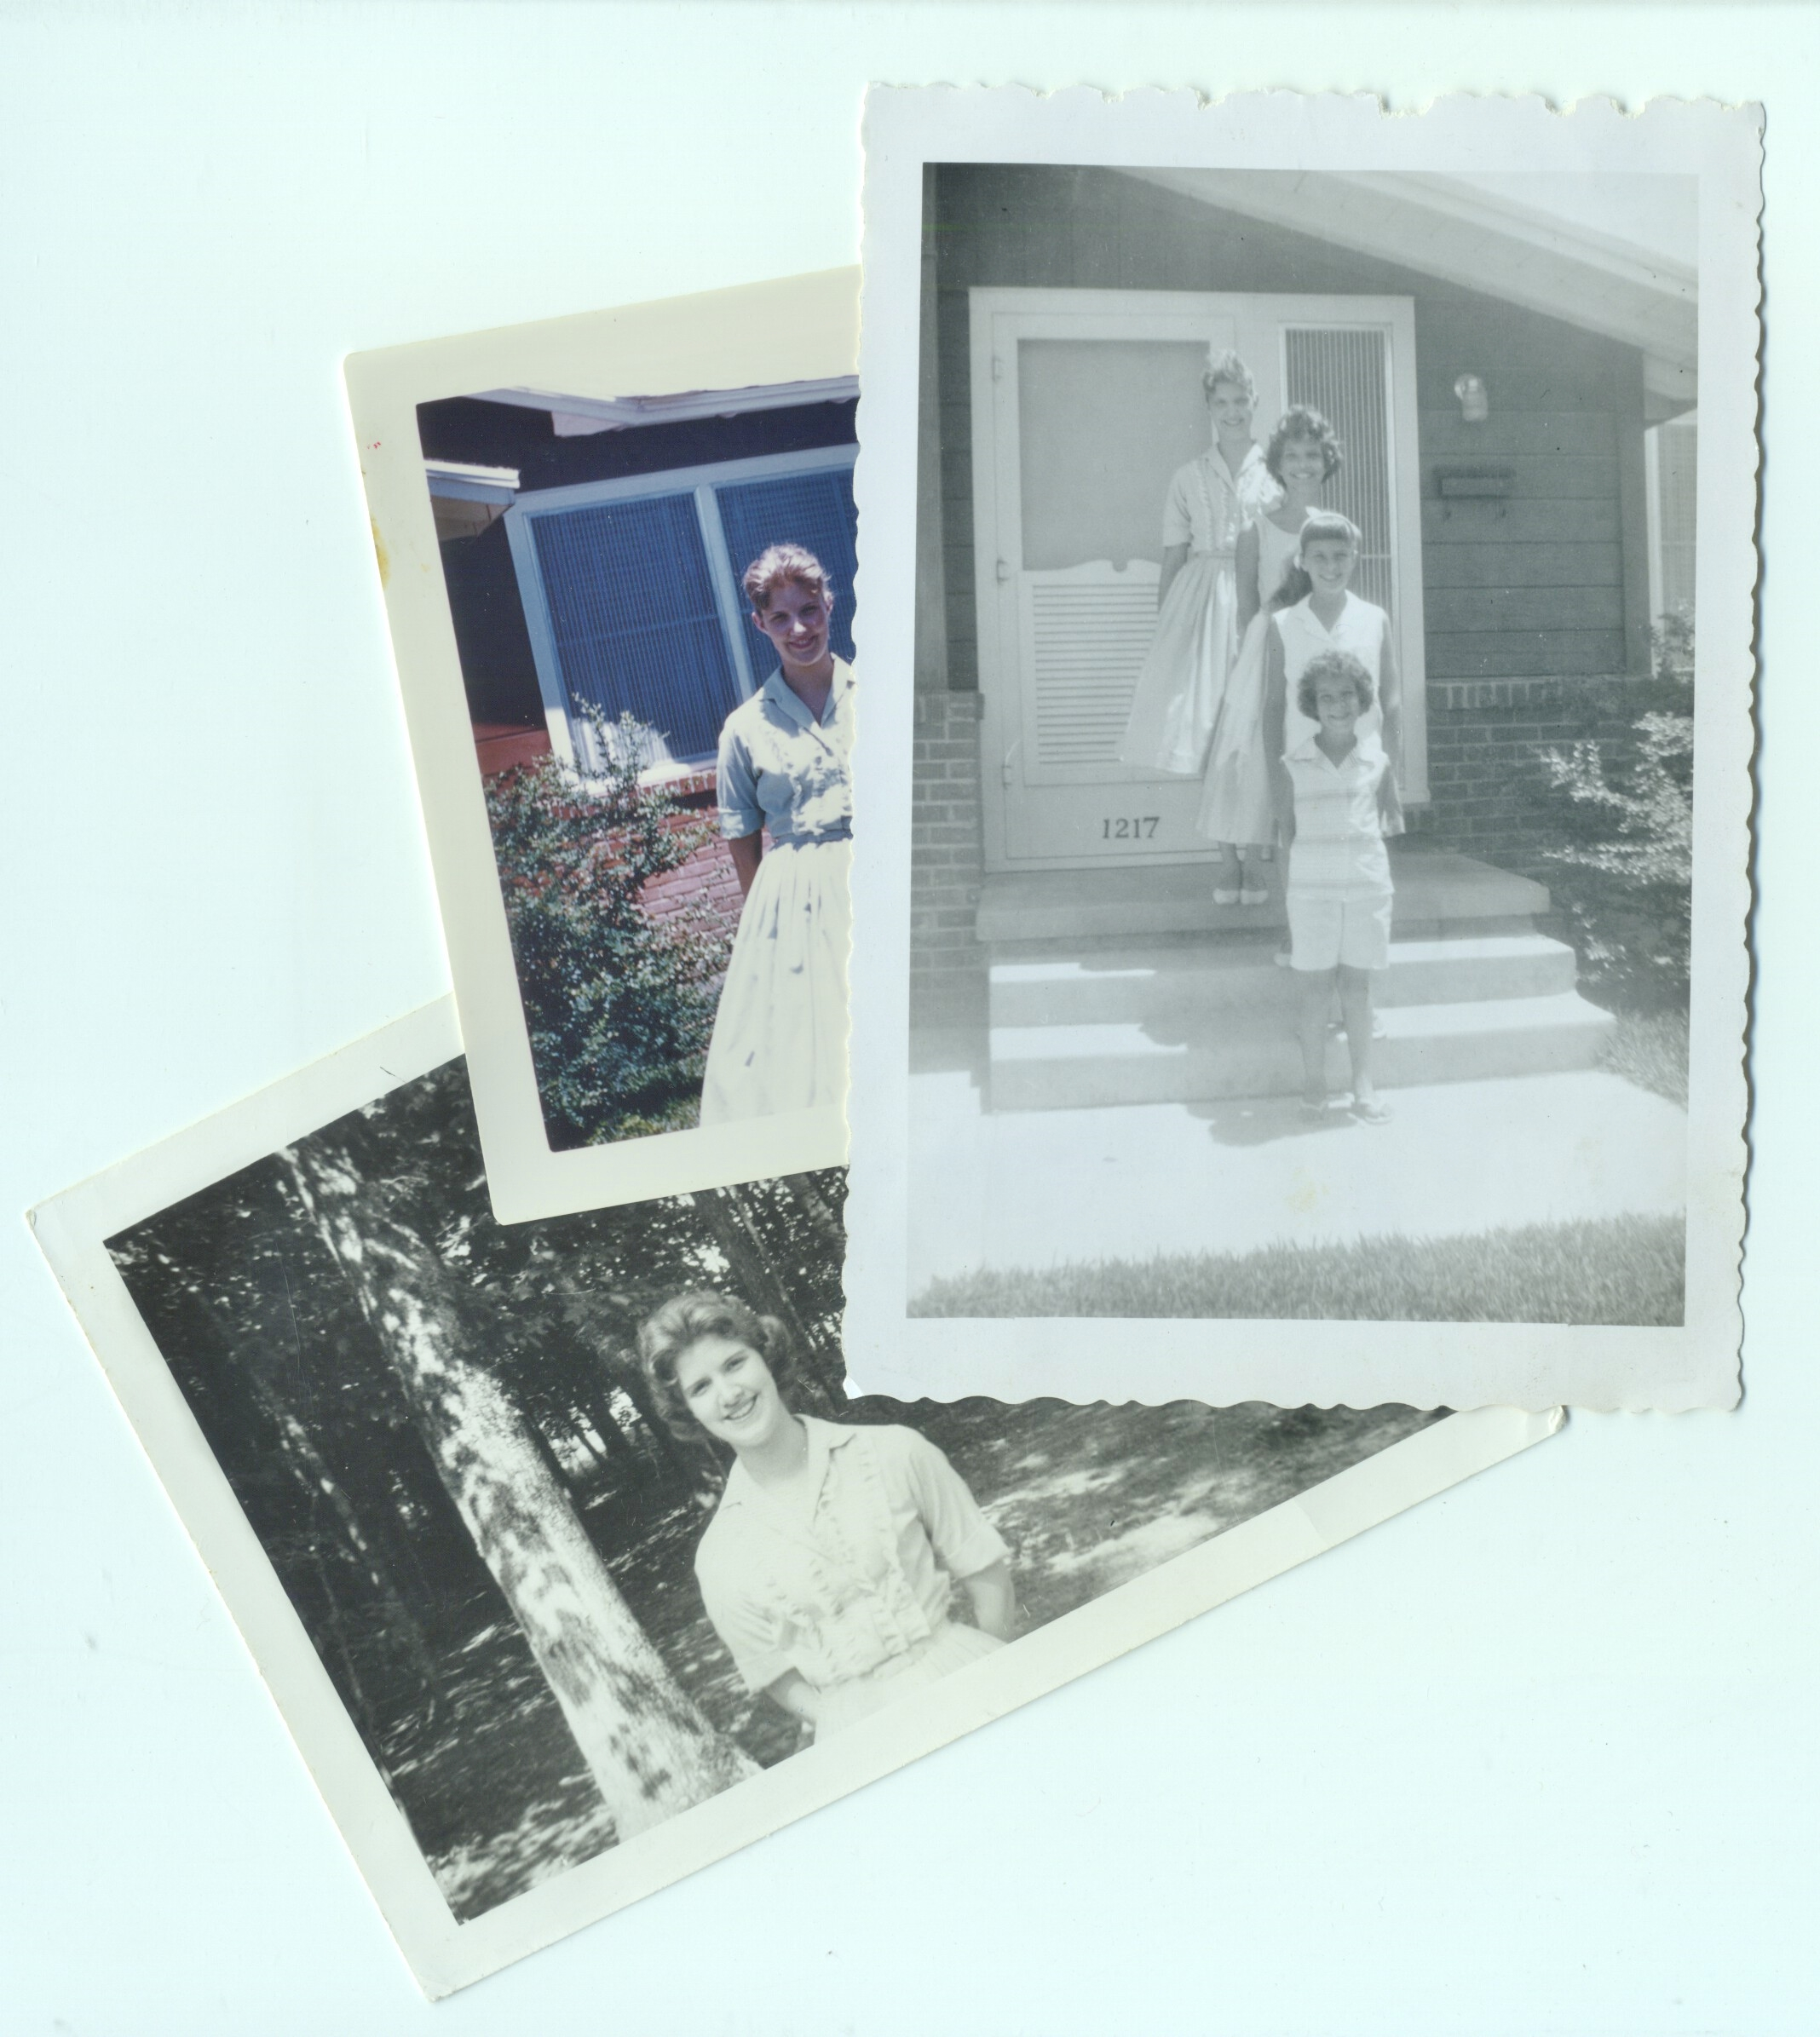 Three photos of me wearing my mint green shirtwaist 1957 Easter dress ... the top two photos were taken in 1958 ... on the stairs I am with my sister and cousins ... the bottom photo was taken in 1960